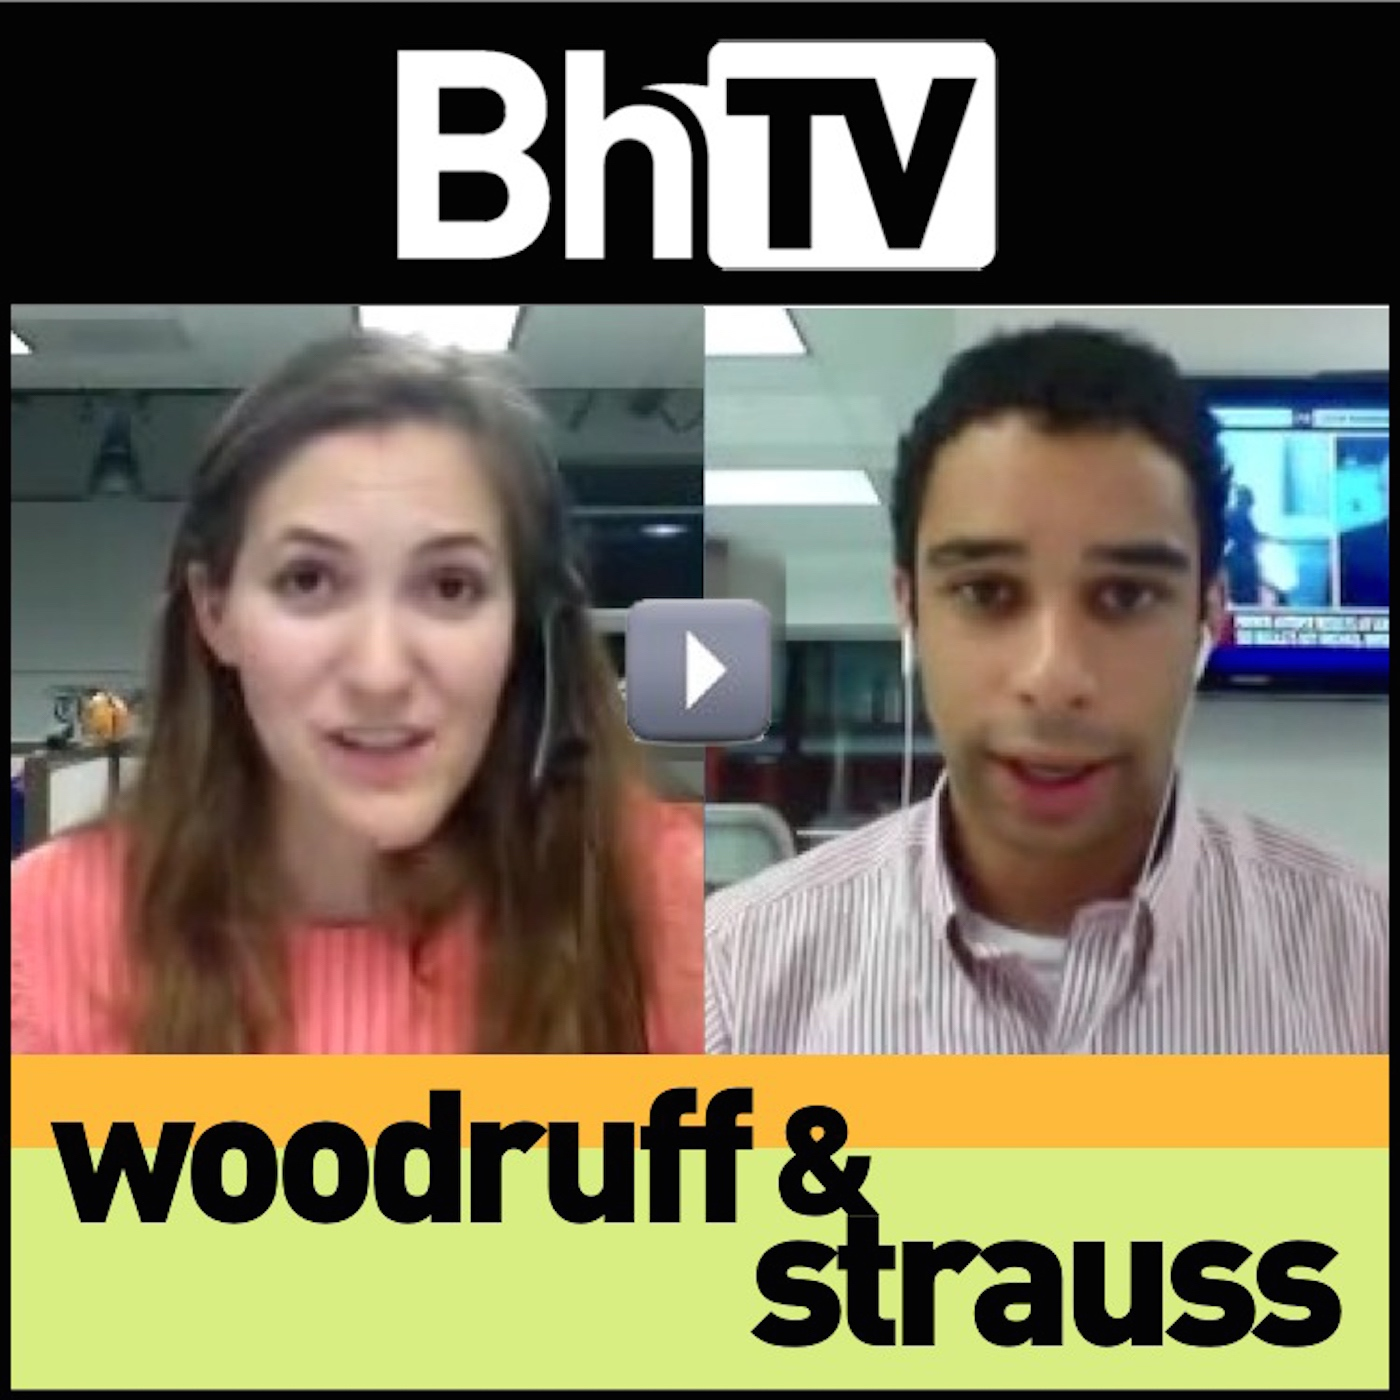 BhTV: Woodruff & Strauss (video)